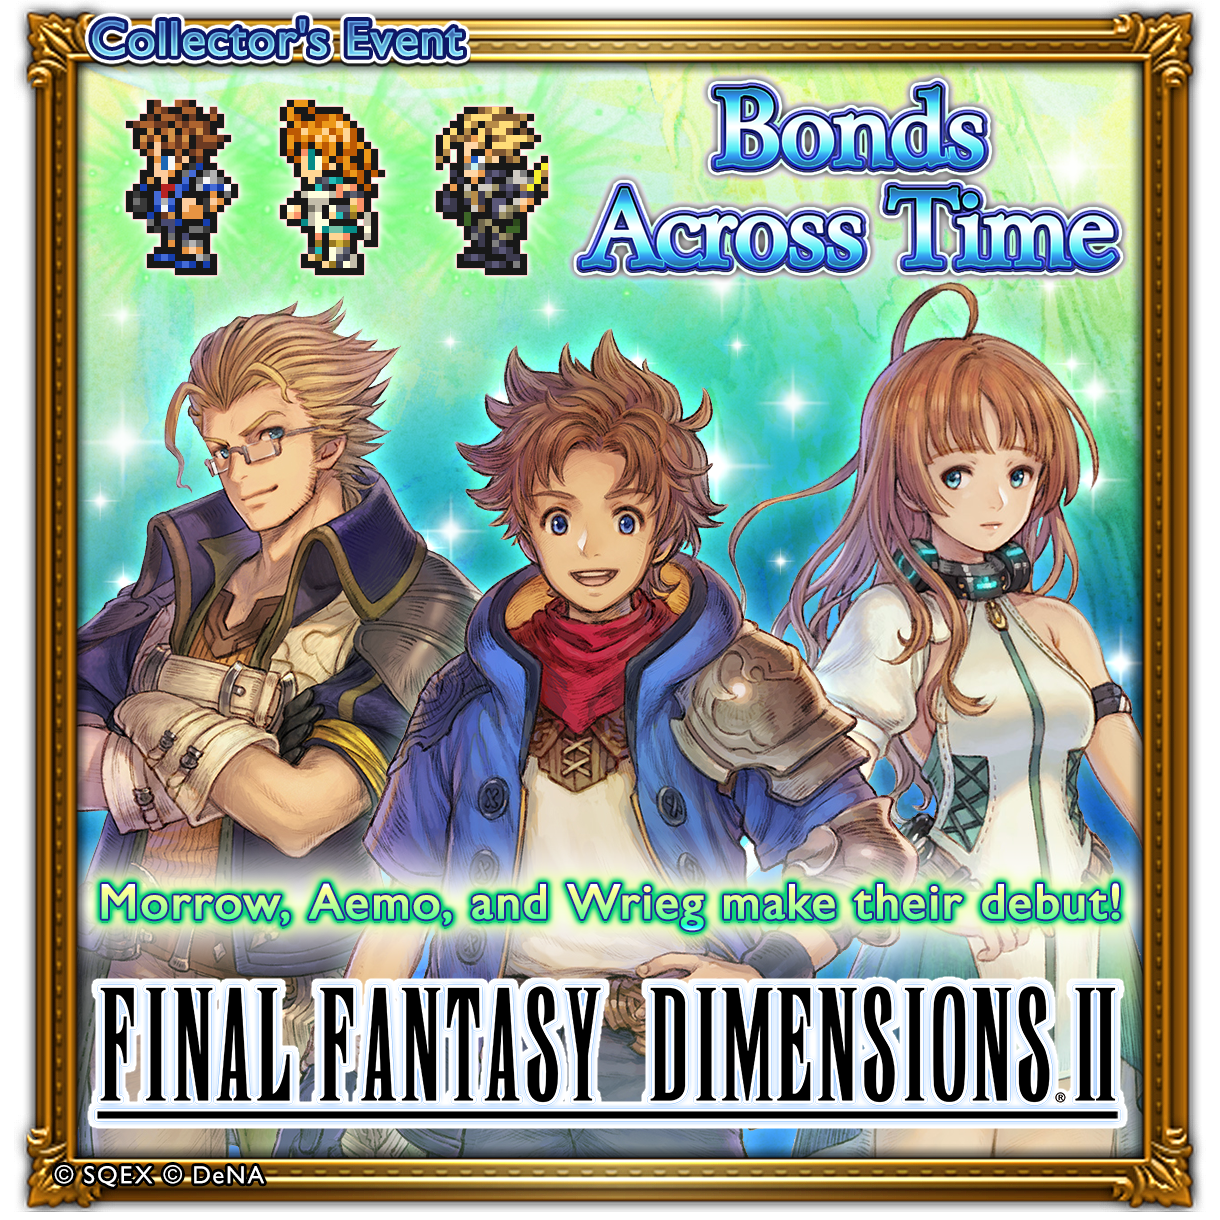 We Re Giving Out A Special Final Fantasy Dimensions Cartoon